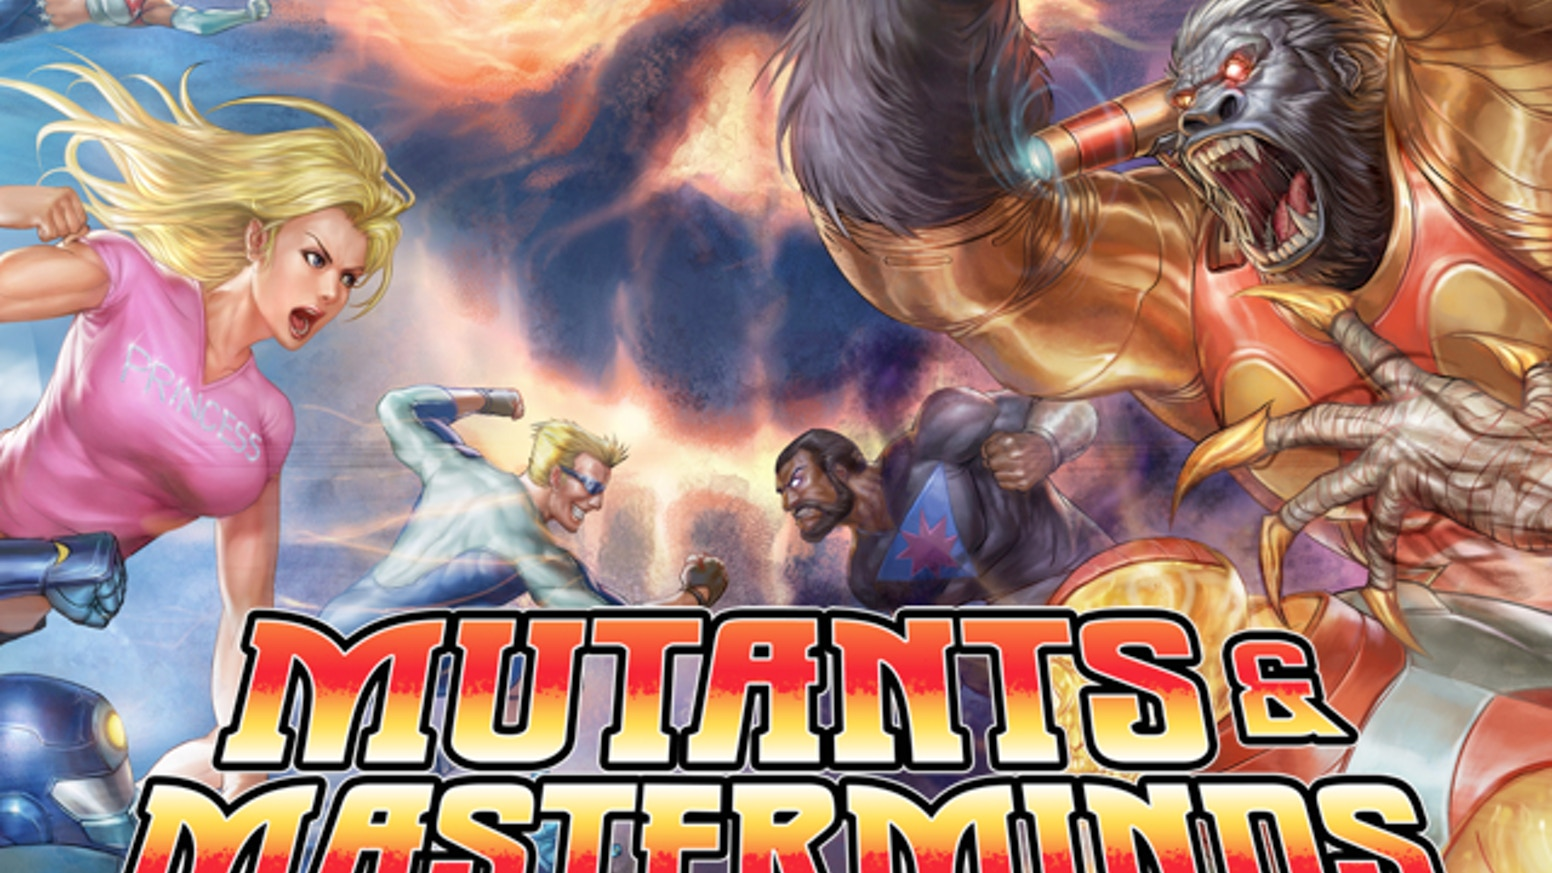 A femme looking person and a masc looking person preparing to punch a giant gorilla and a muscular masc looking person. Text reads 'Mutants and Masterminds'.